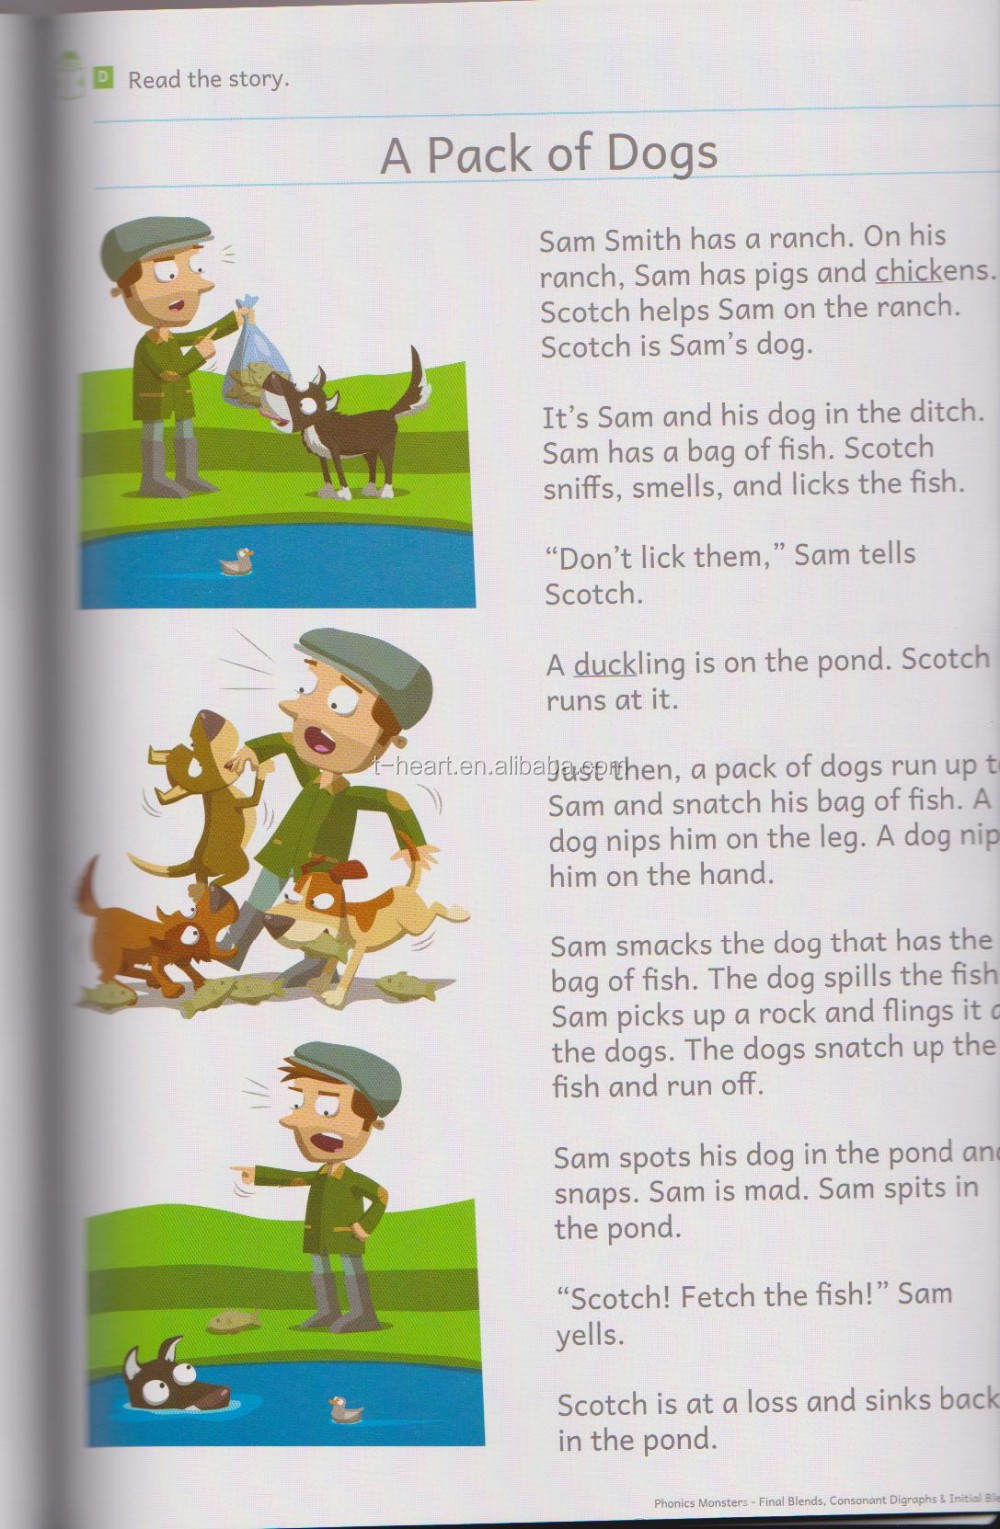 English learning audio book for kids learning Phonics